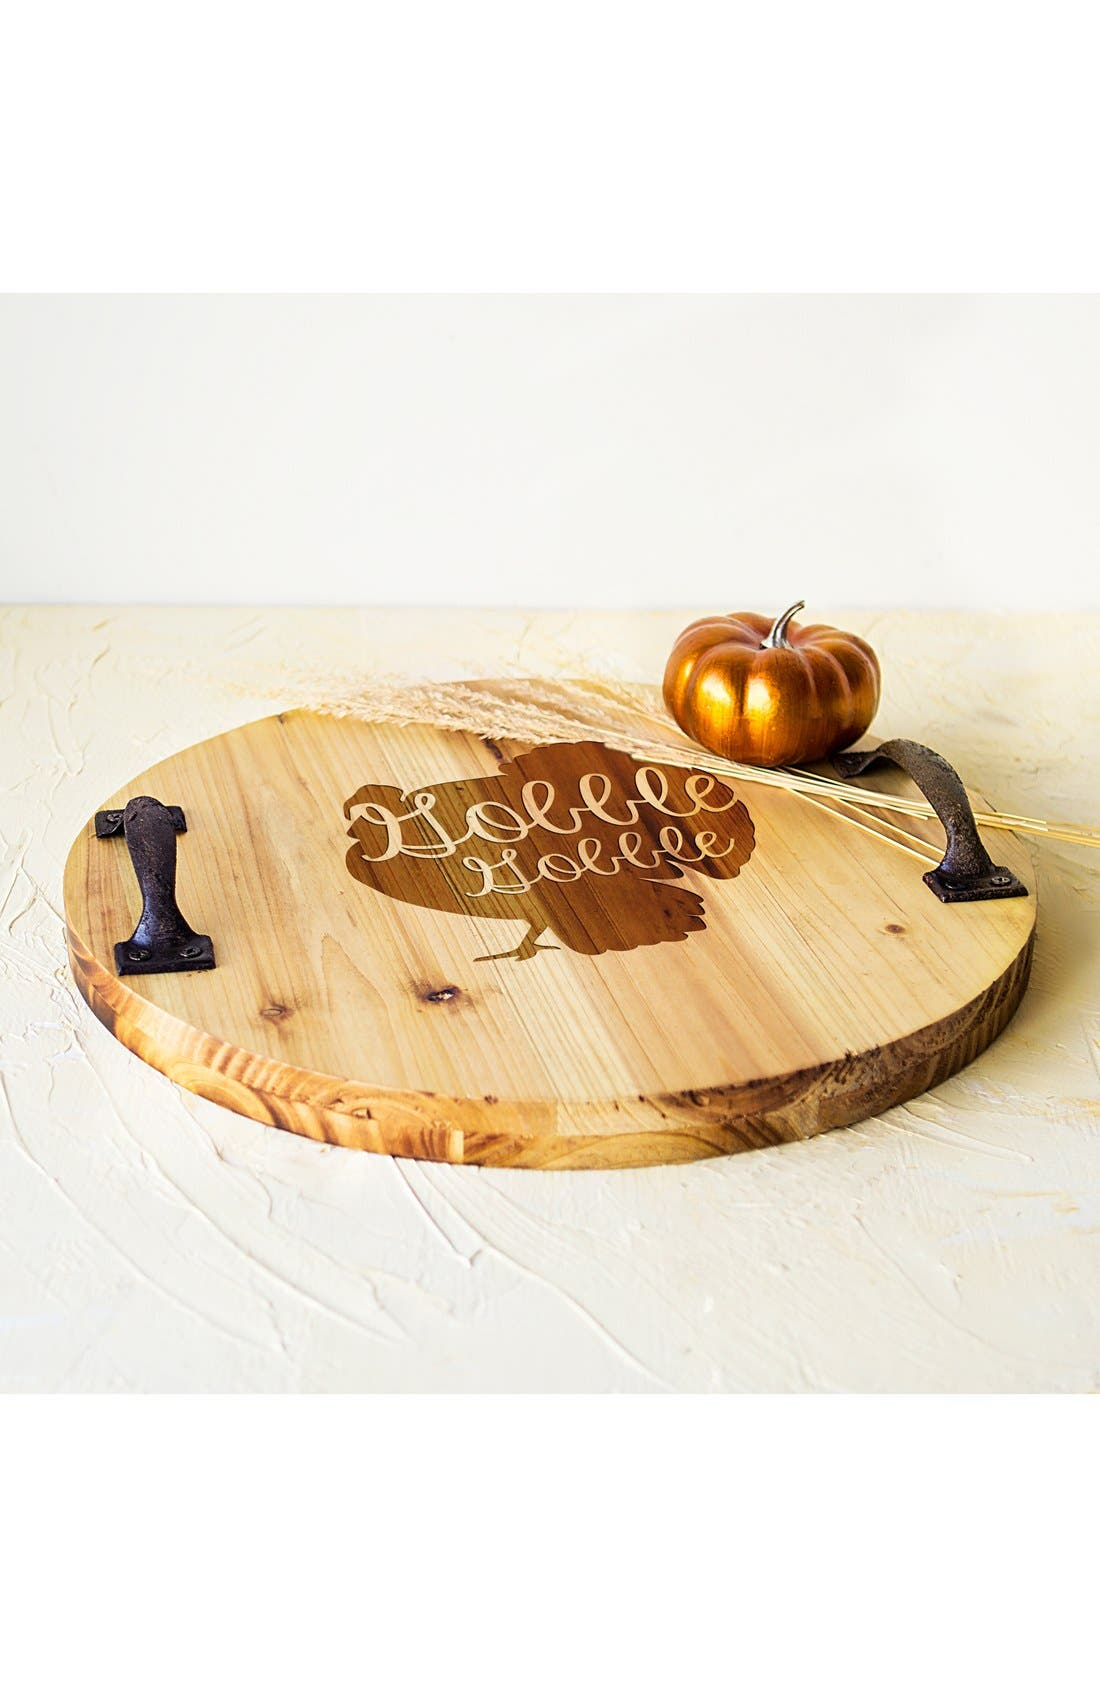 'Turkey' Rustic Wooden Tray,                             Alternate thumbnail 3, color,